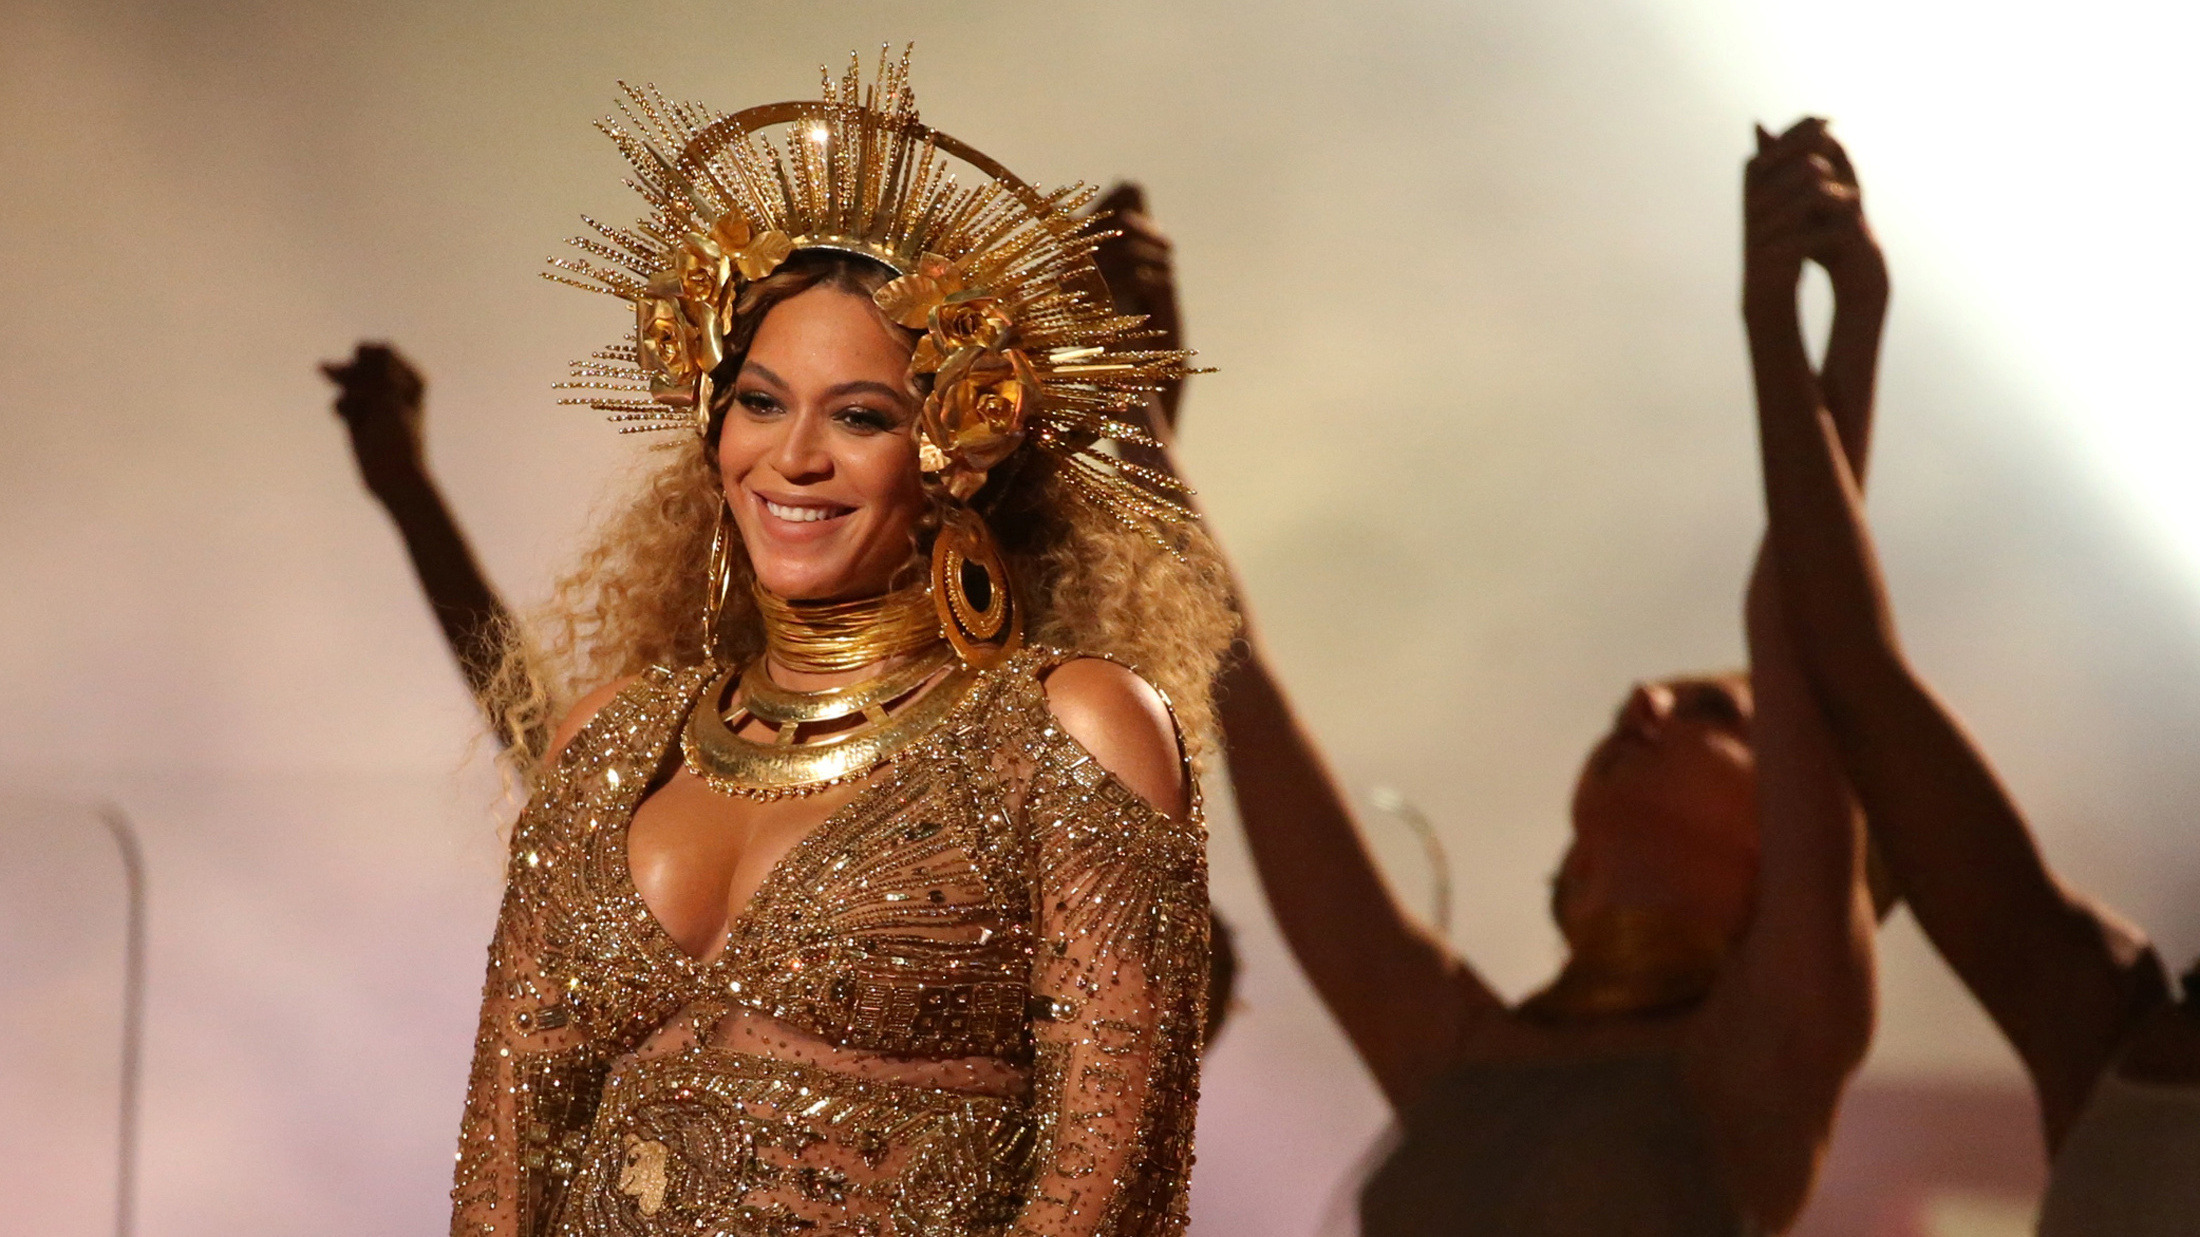 Image for What This Picture Of Beyoncé Tells Us About How Generation Z Connects Article